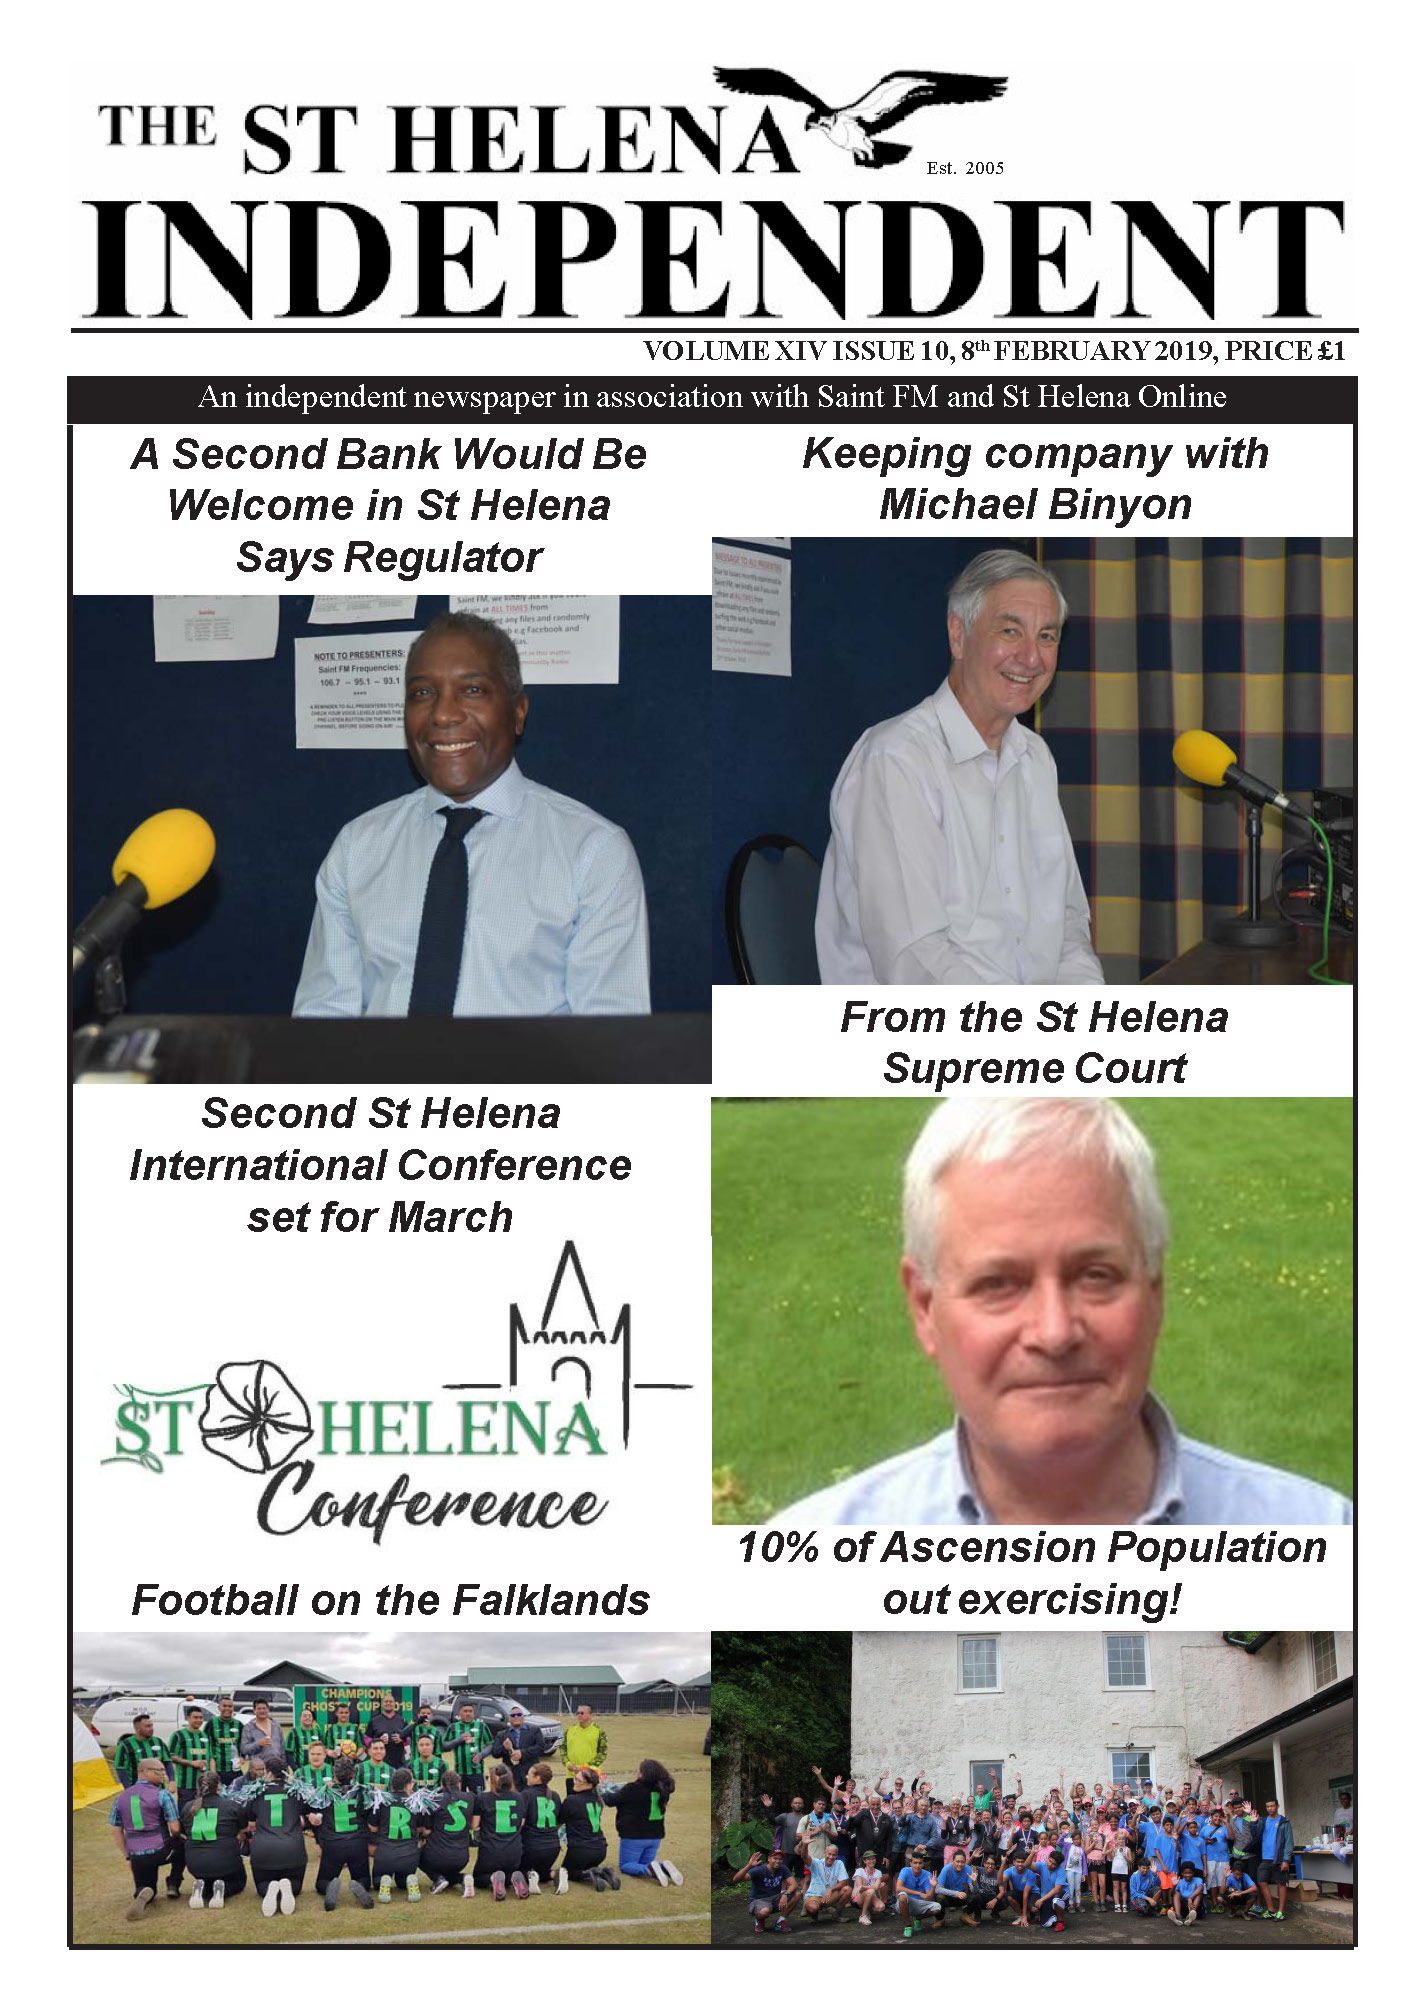 St Helena Independent 20190208